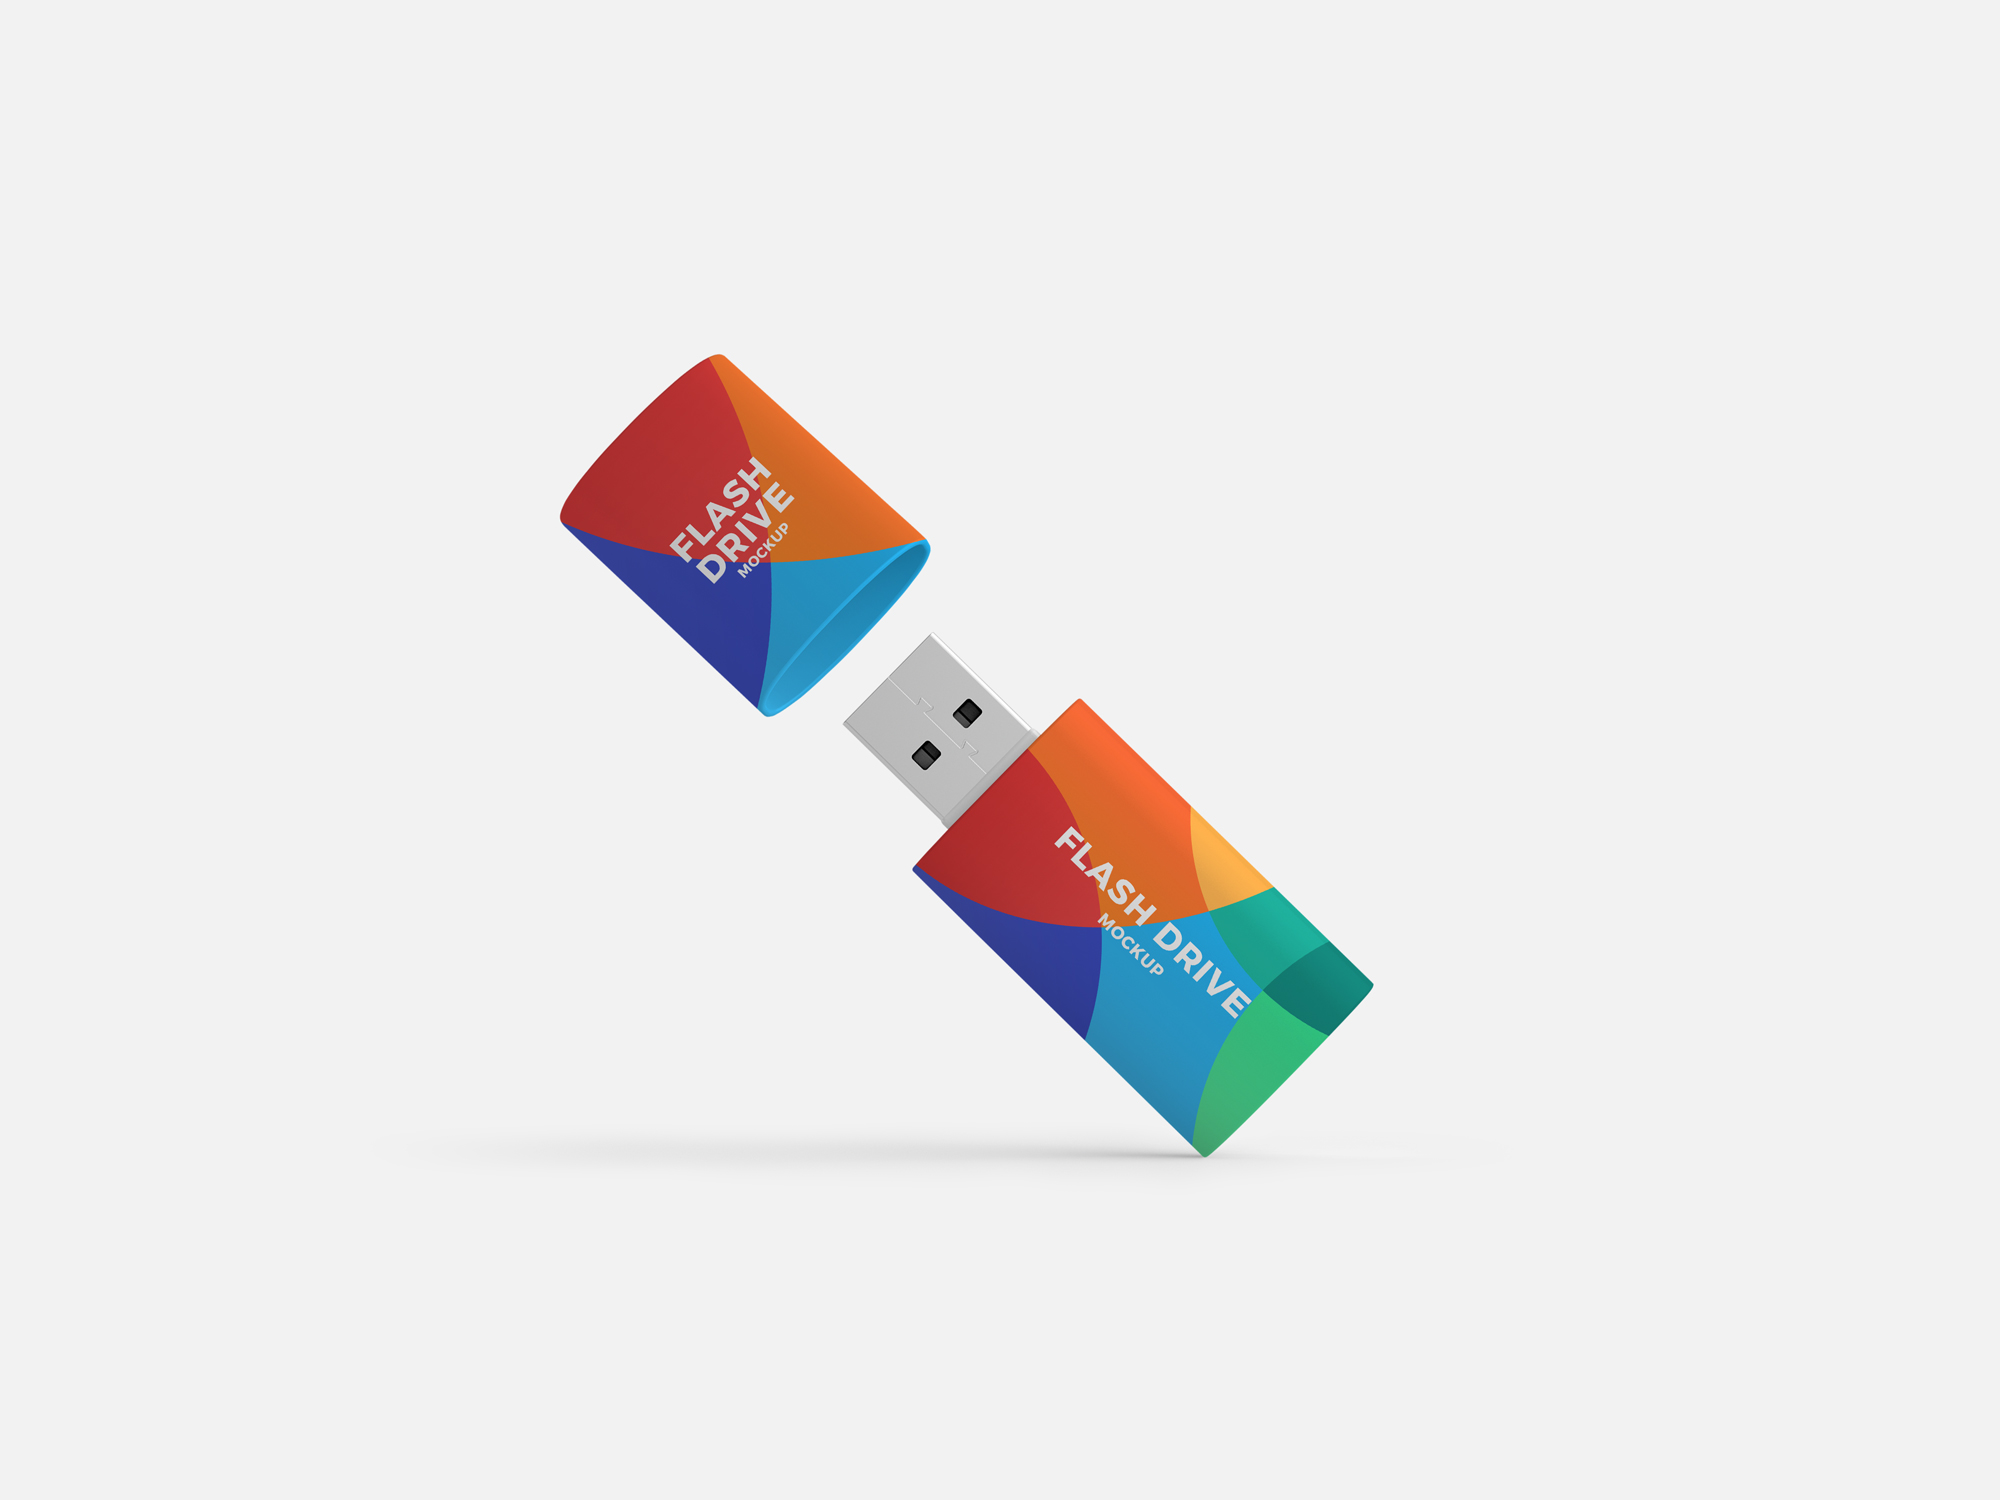 Free-Modern-Flash-Drive-Mockup-PSD-For-Branding-2018